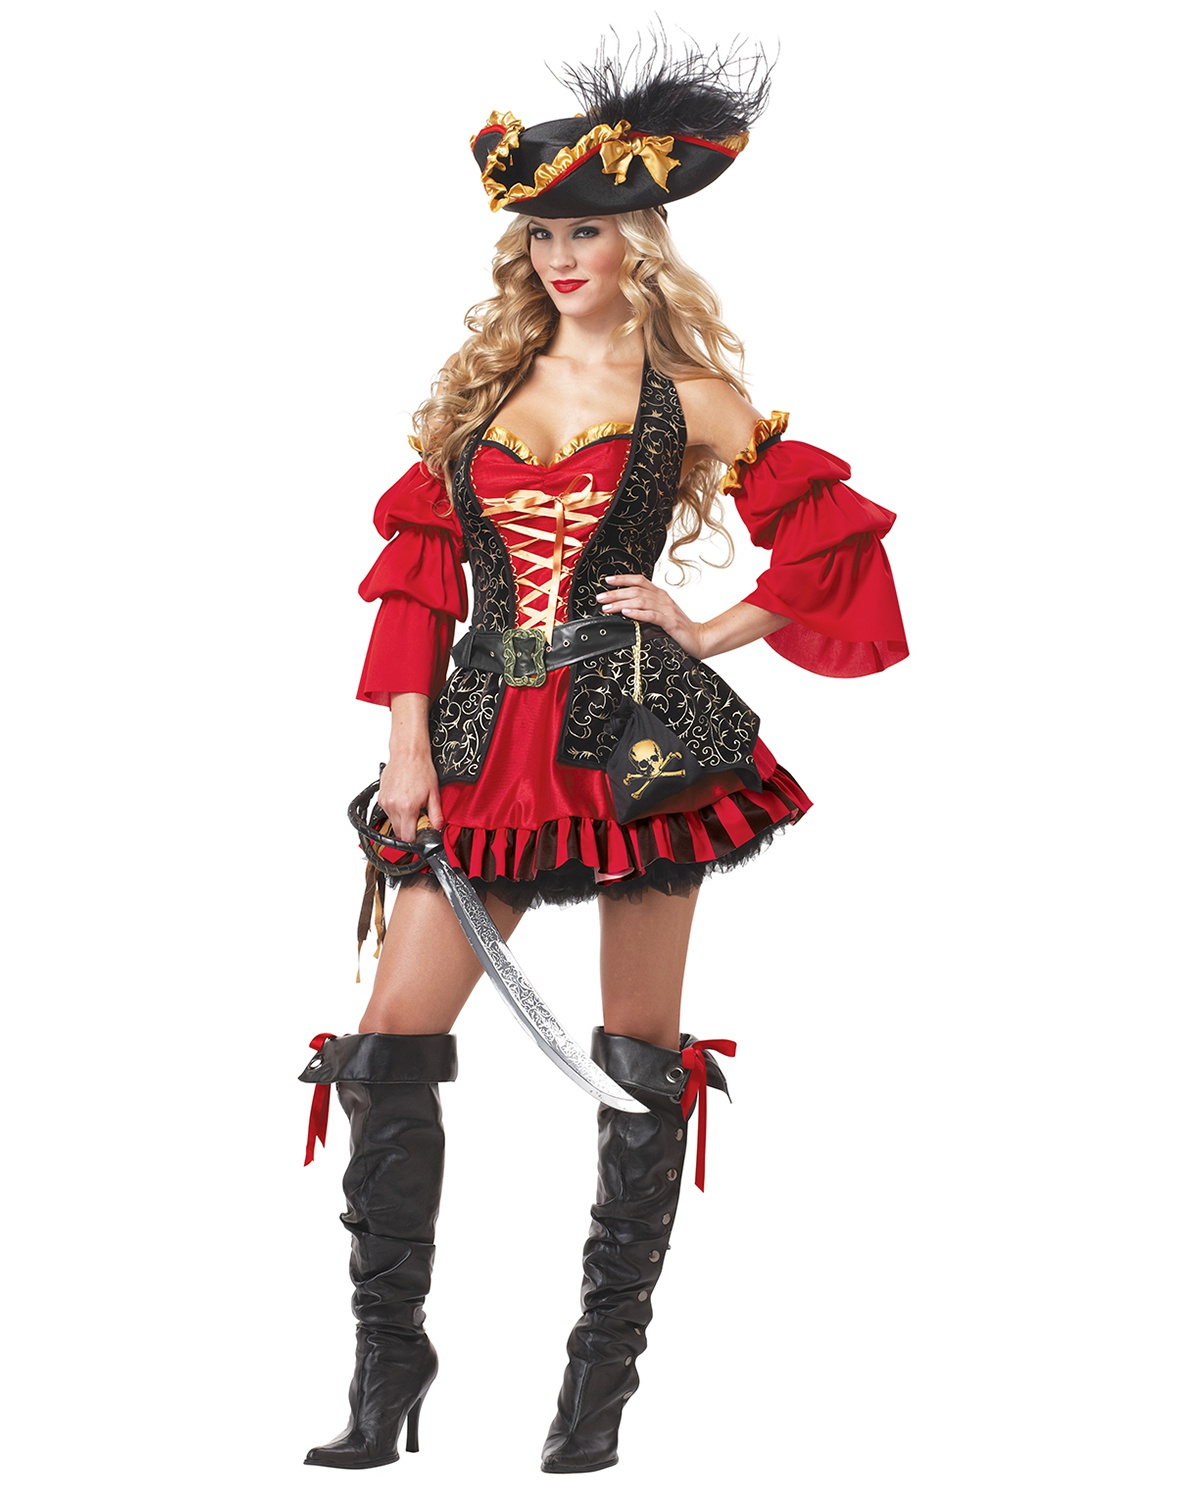 'California Costumes 01196 Eye Candy Spanish Pirate Adult Costume'